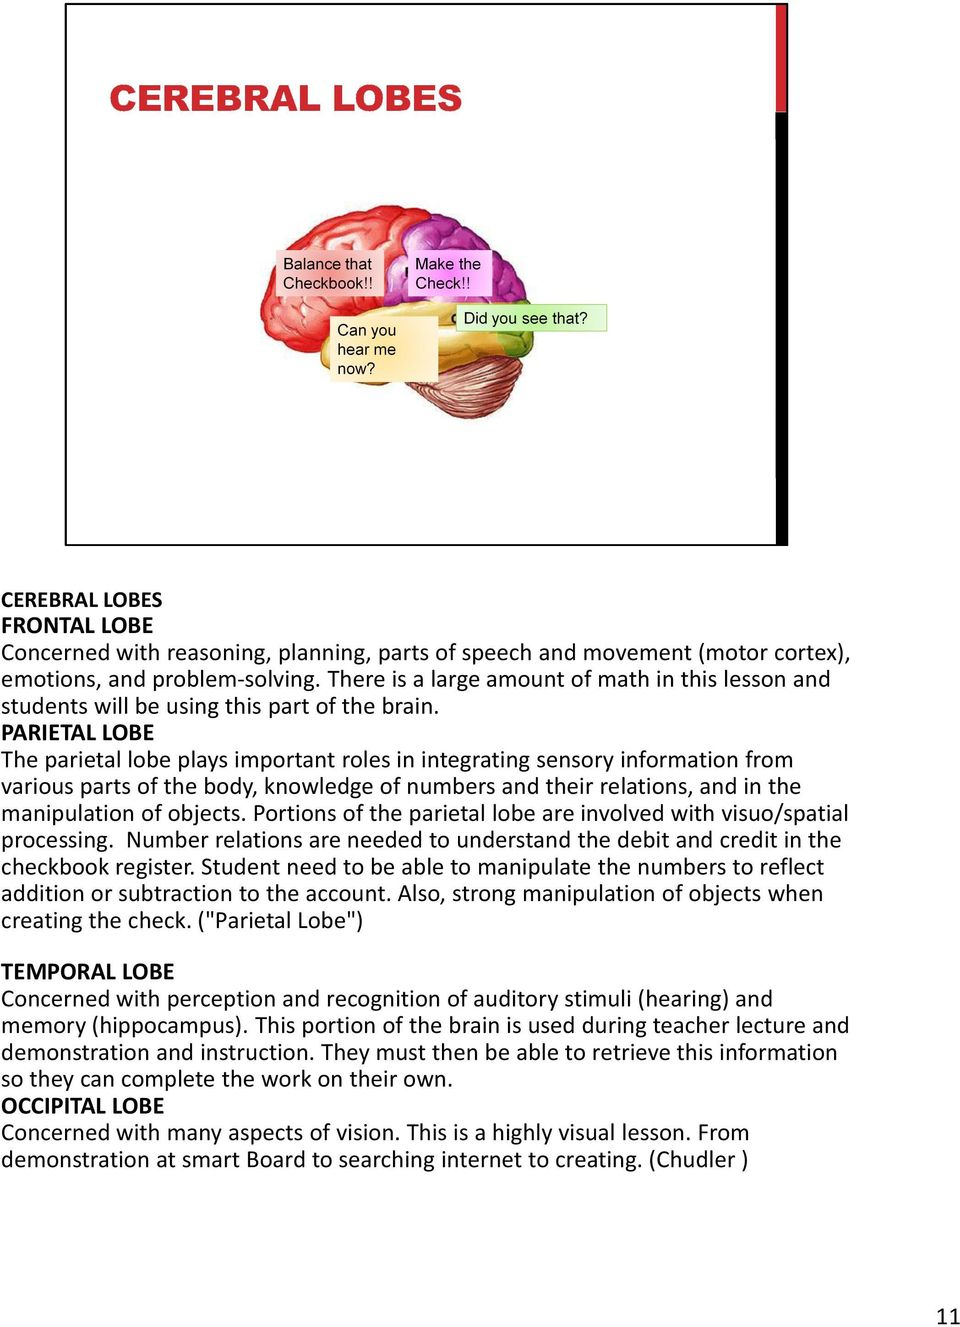 PARIETAL LOBE The parietal lobe plays important roles in integrating sensory information from various parts of the body, knowledge of numbers and their relations,and in the manipulation of objects.